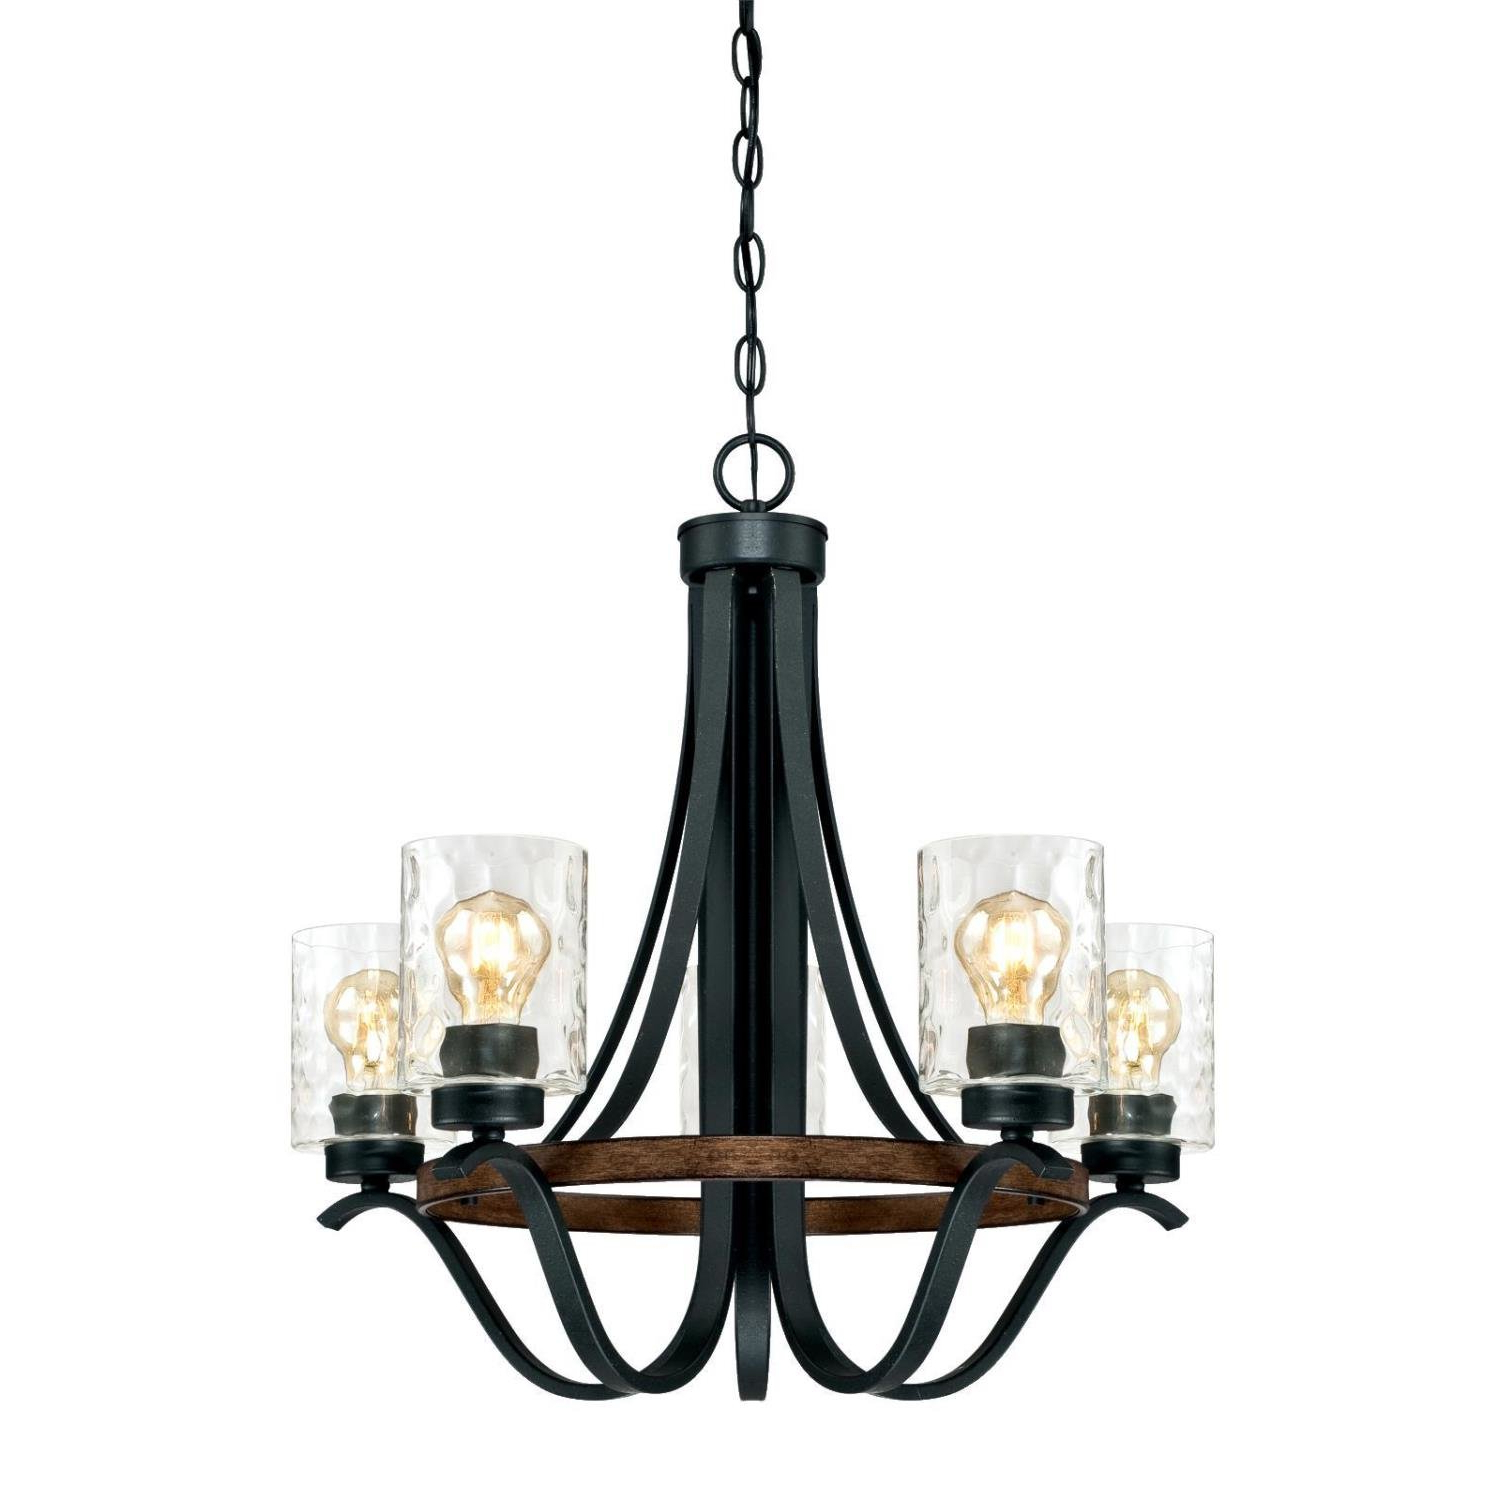 Sabo Indoor 5 Light Shaded Chandelier Intended For Well Known Crofoot 5 Light Shaded Chandeliers (View 7 of 25)